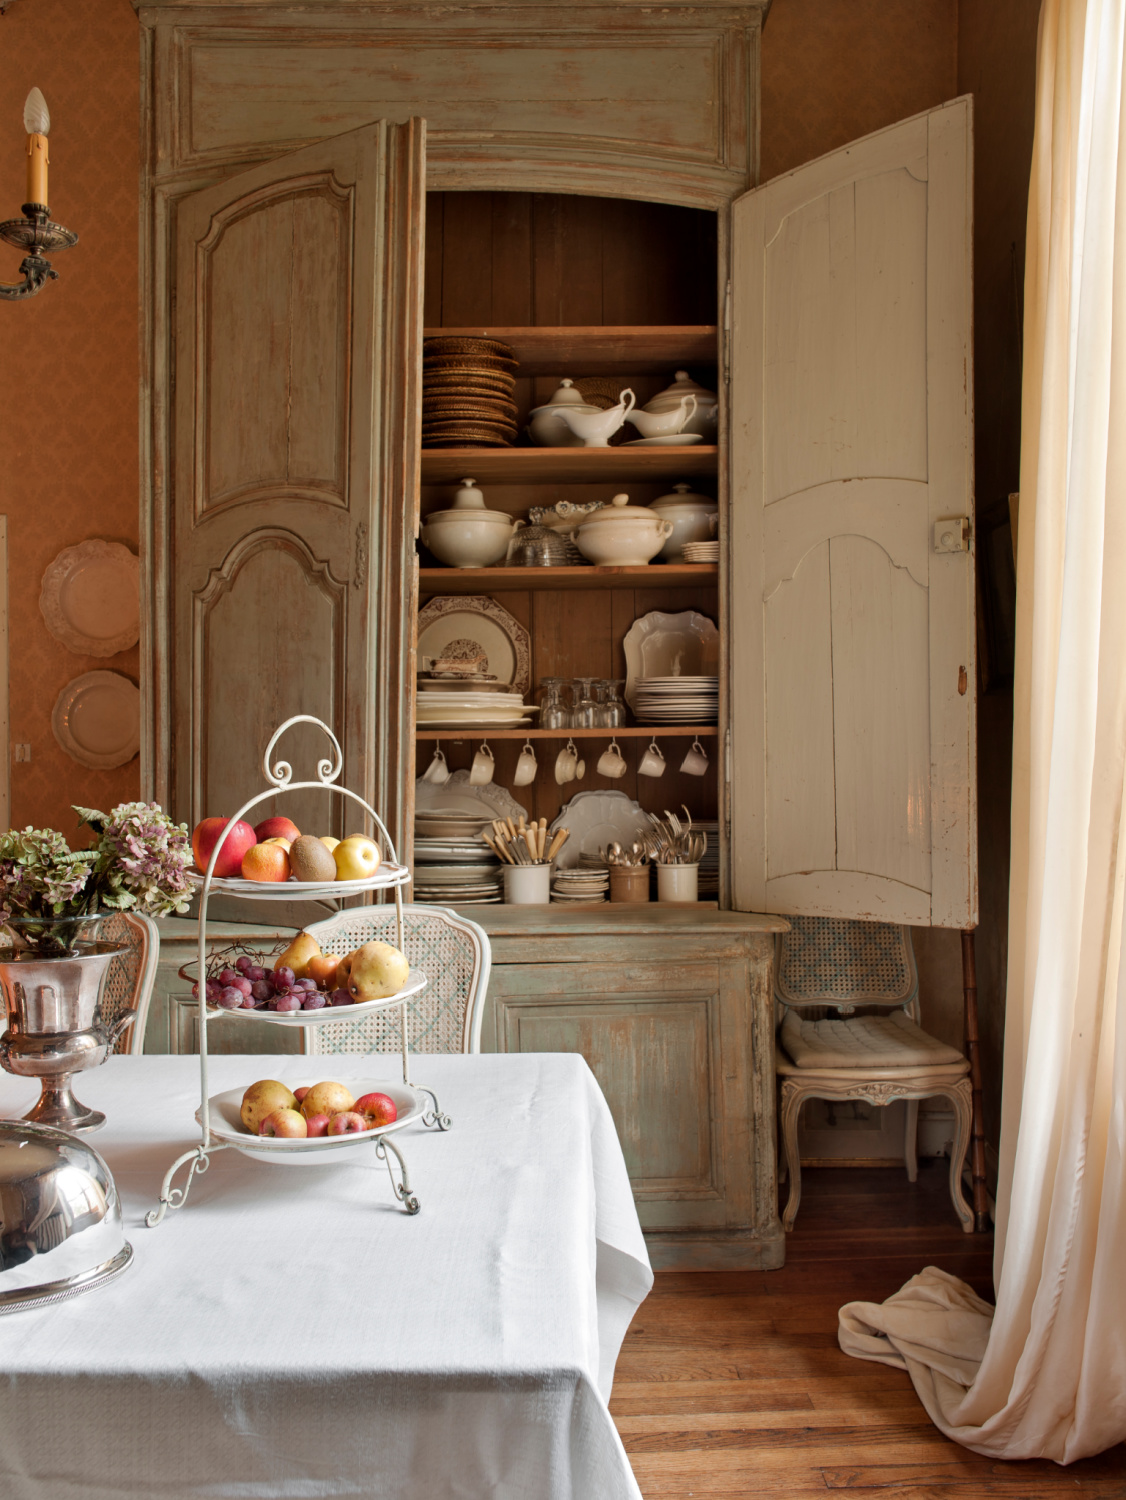 Distressed pale French grey dining room cupboard is full of traditional style china treasures. Featured in Shauna Varvel's PROVENCE STYLE. #interiordesign #frenchcountry #oldworldstyle